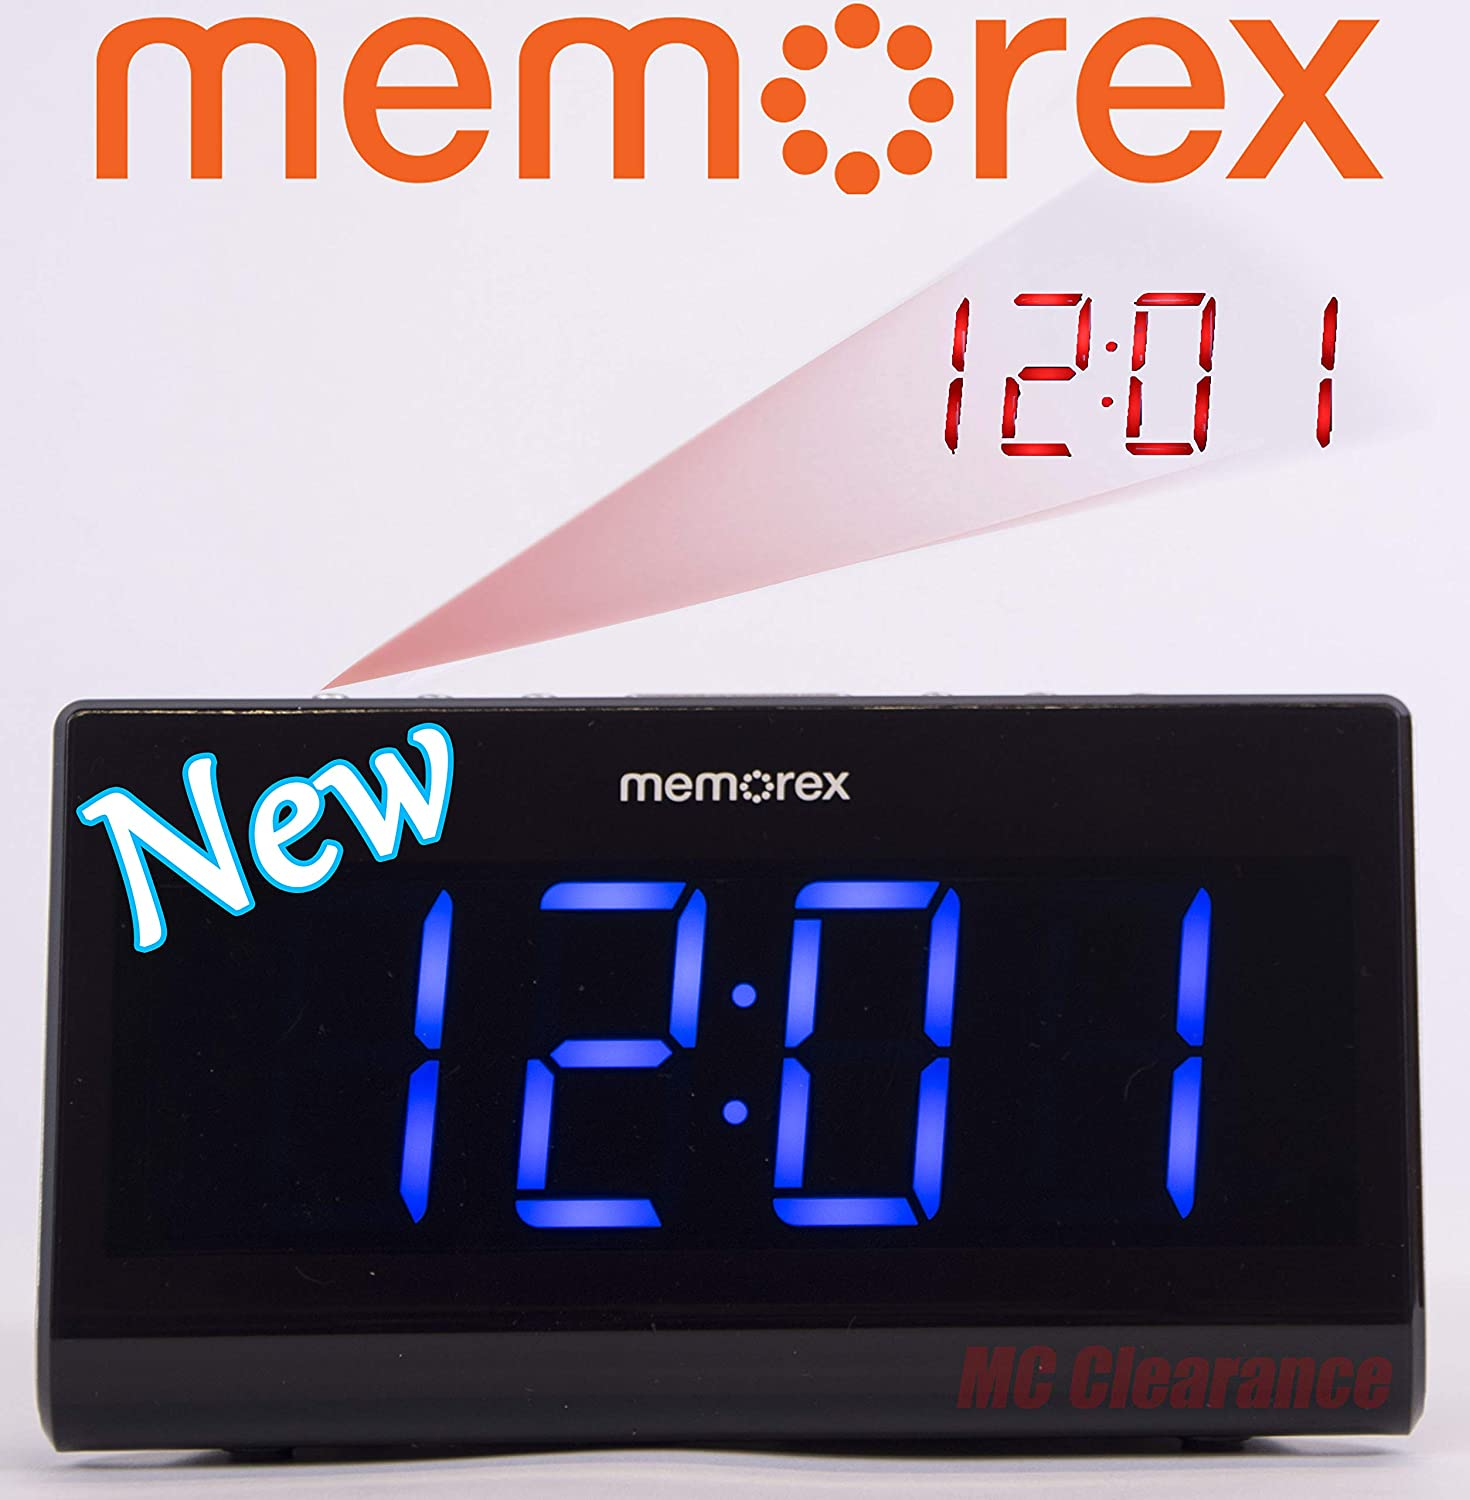 Amazon.com: Memorex MC0952 Projection 180° Flip with Focus Clock Double Alarm Radio: Home Audio & Theater